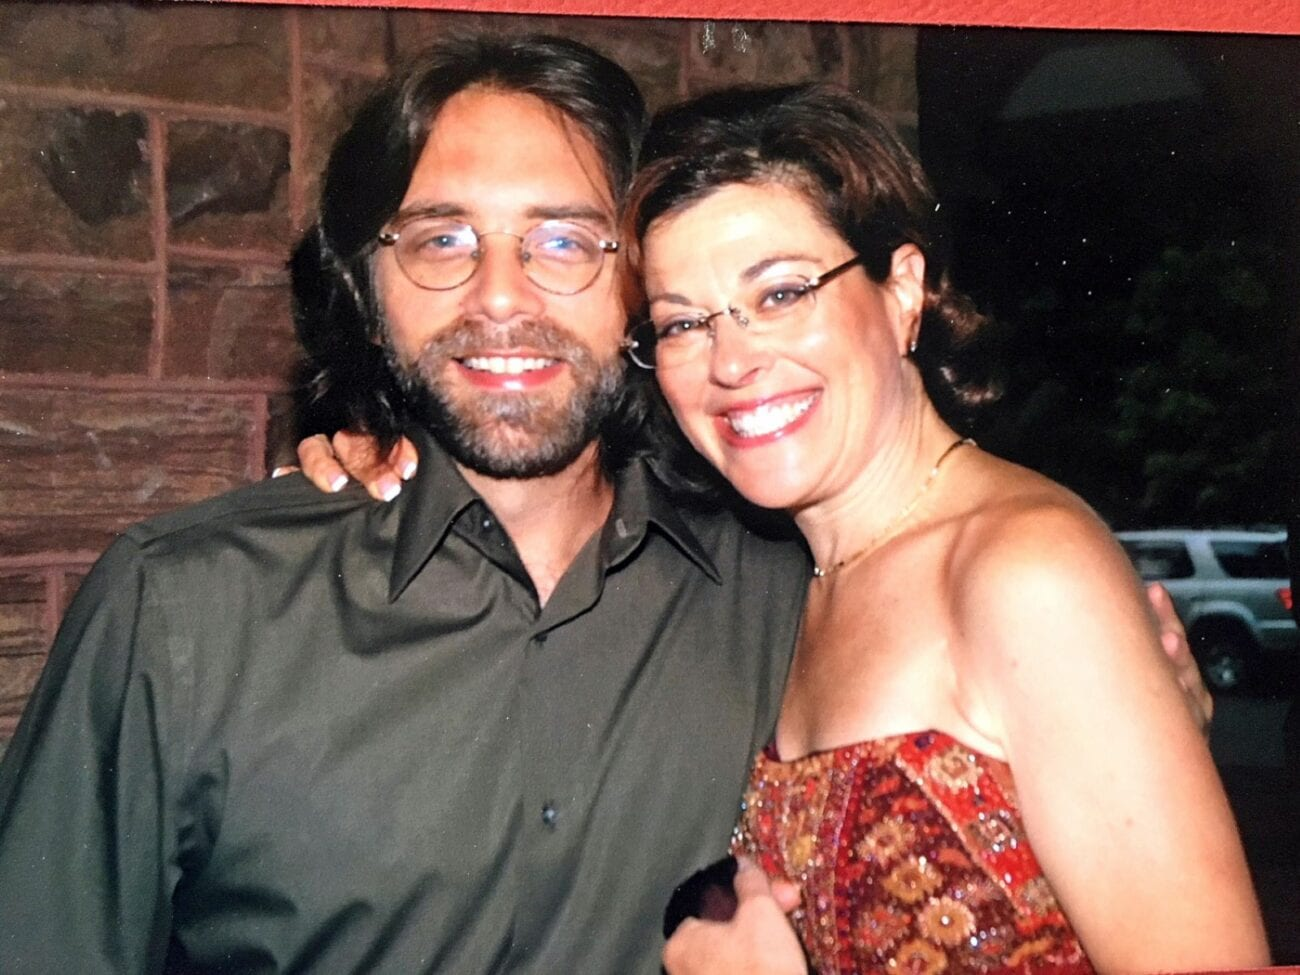 The NXIVM still seems to have some of its members following the leader Keith Raniere, how did the cult manage to brainwash them?